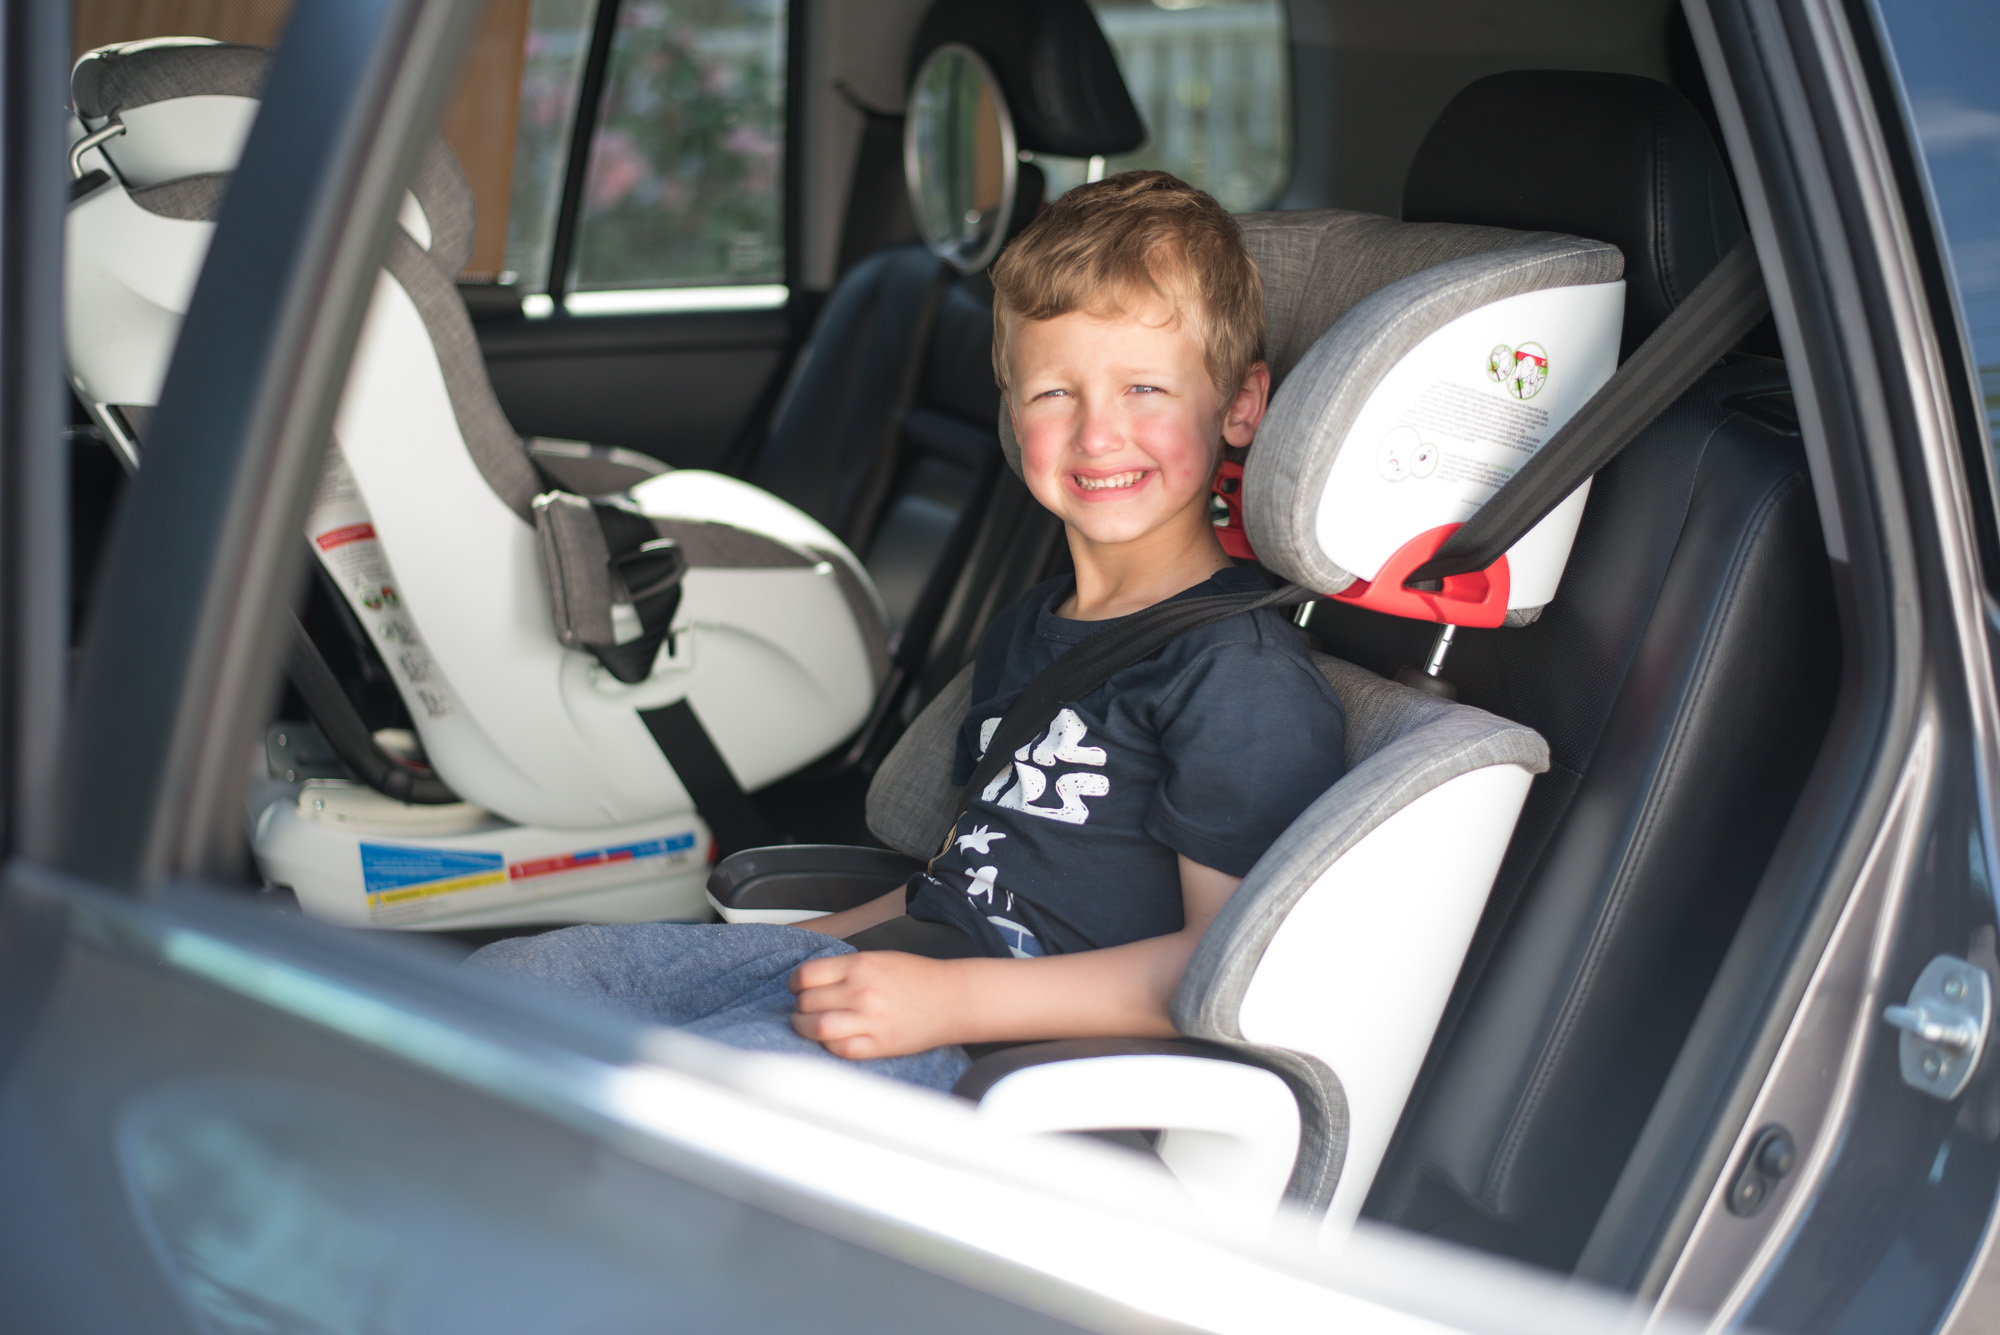 Wild Rosebuds Review of the Clek Oobr High back Booster seat